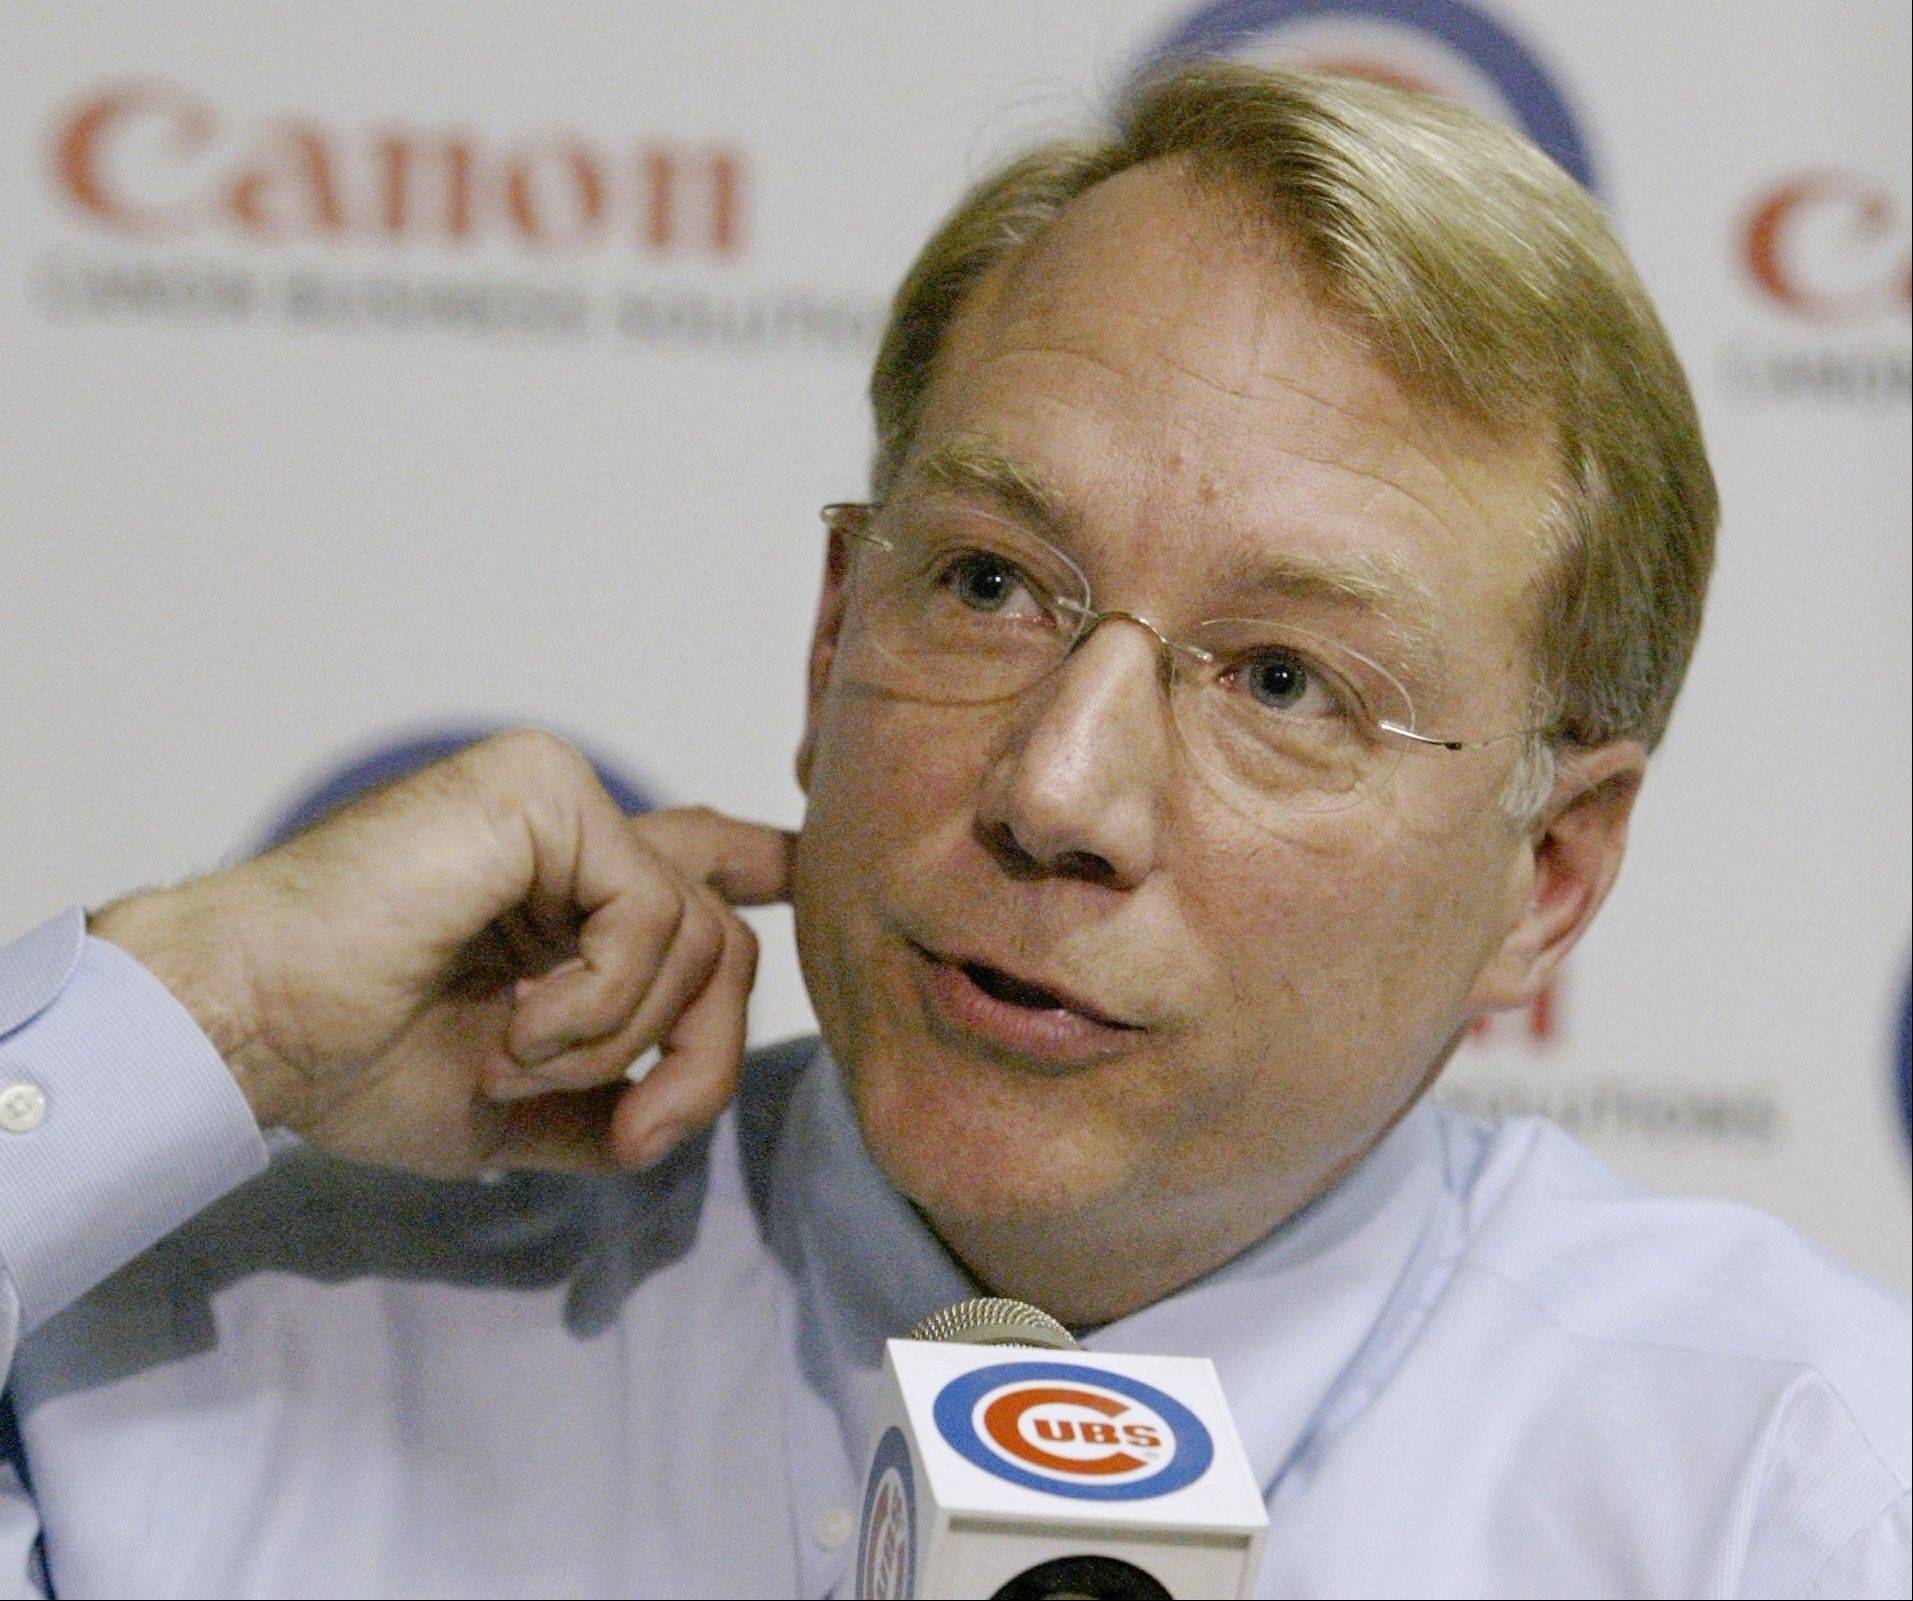 Chicago Cubs president Andy MacPhail resigned as president of the Cubs on Sunday, Oct. 1, 2006 after an 8-5 victory over the Colorado Rockies in what was Dusty Baker's final game as manager.